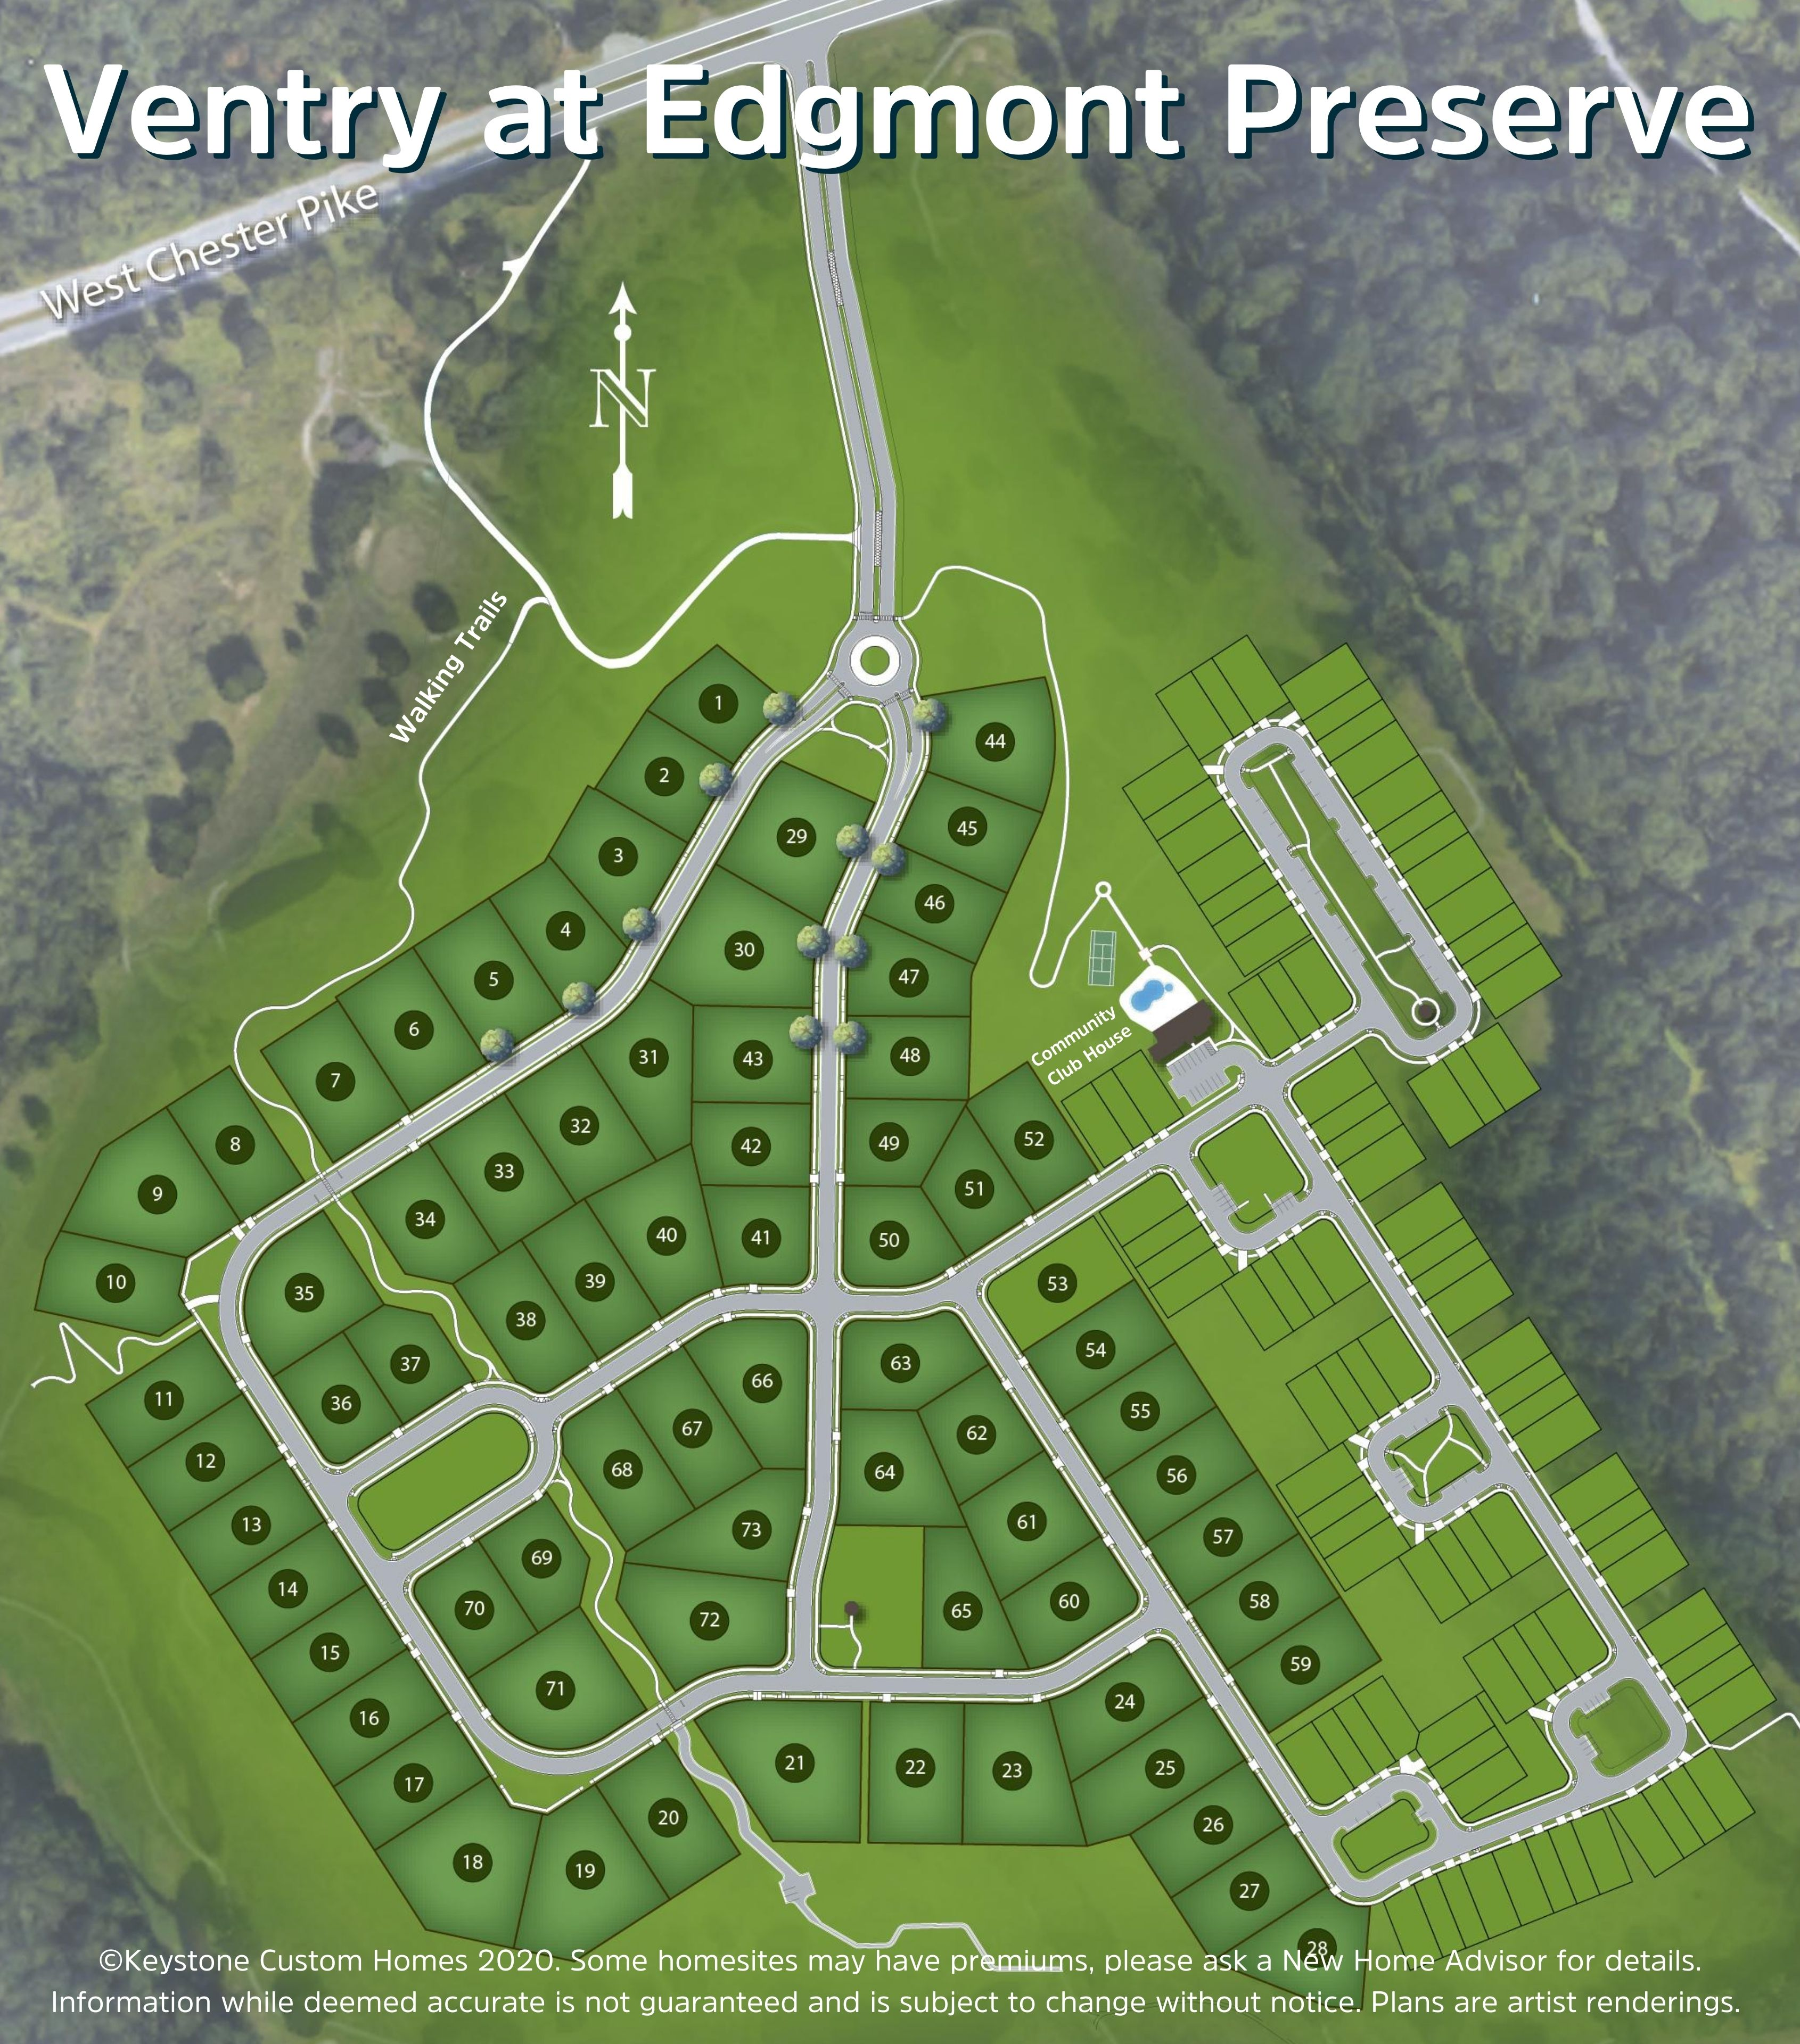 Ventry at Edgmont Preserve Lot Map Background